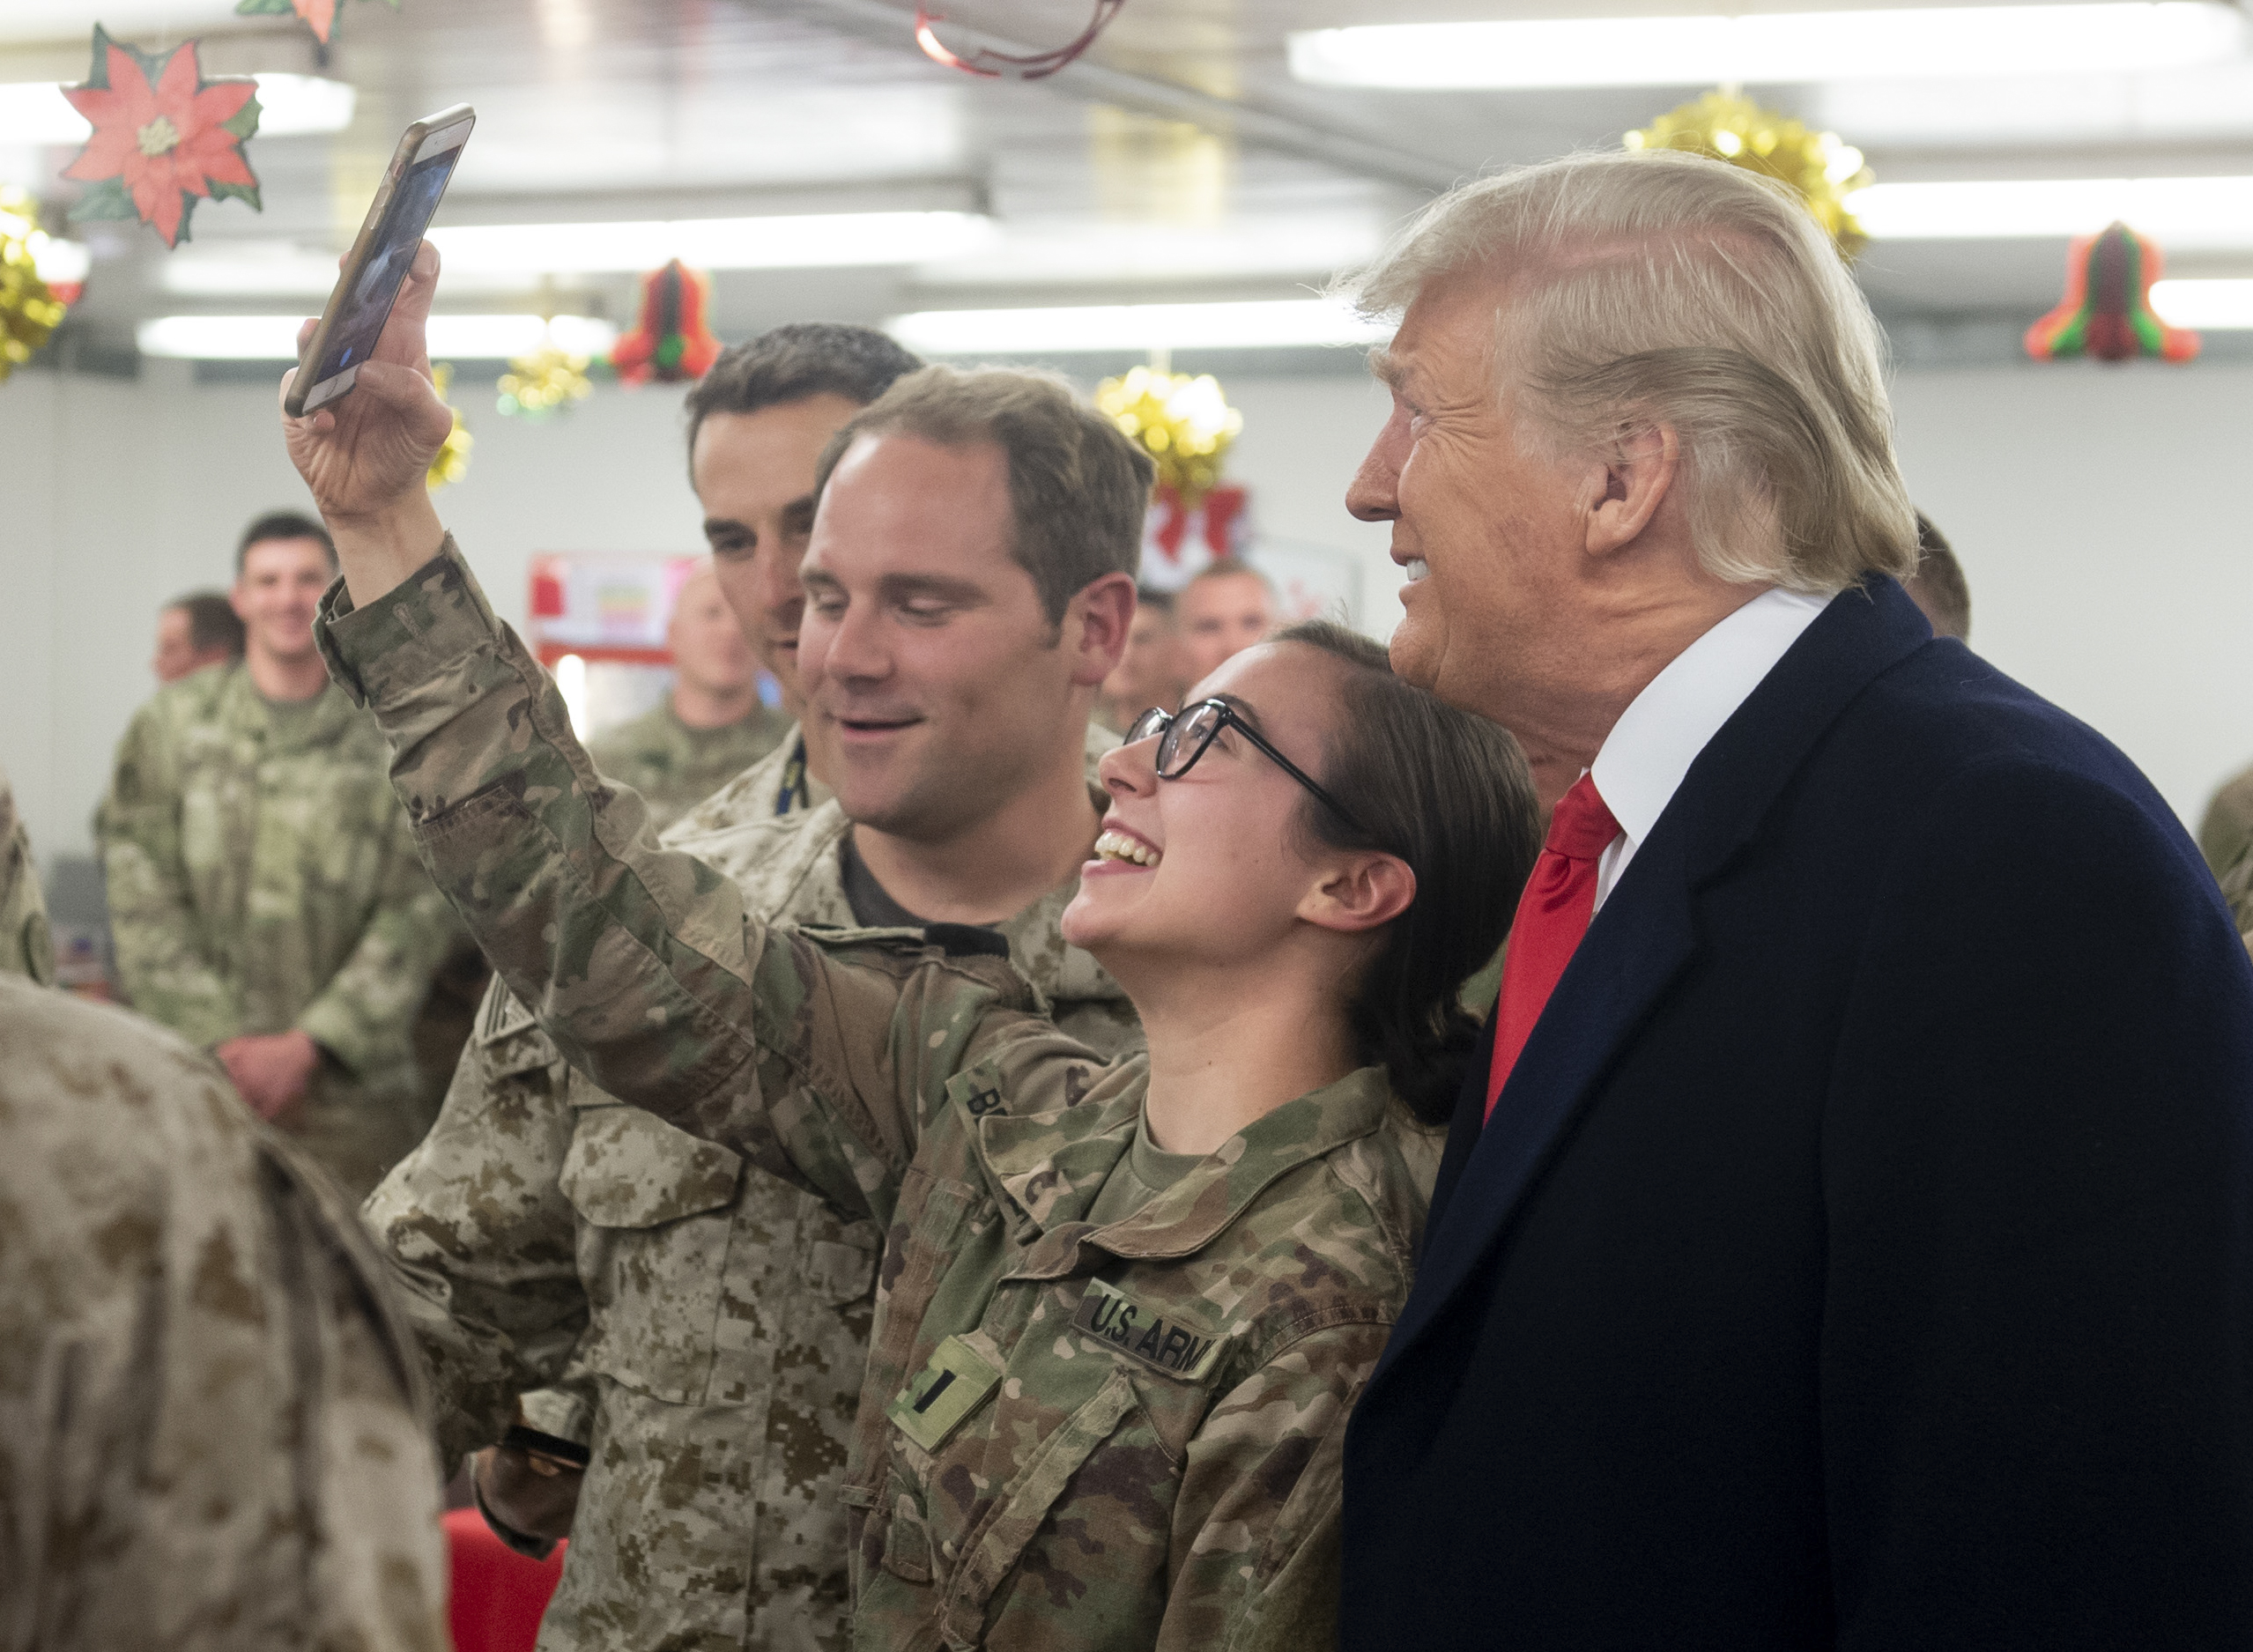 US President Donald Trump greets members of the US military during an unannounced trip to Al Asad Air Base in Iraq on December 26, 2018. - President Donald Trump arrived in Iraq on his first visit to US troops deployed in a war zone since his election two years ago (Photo by SAUL LOEB / AFP) (Photo credit should read SAUL LOEB/AFP/Getty Images)